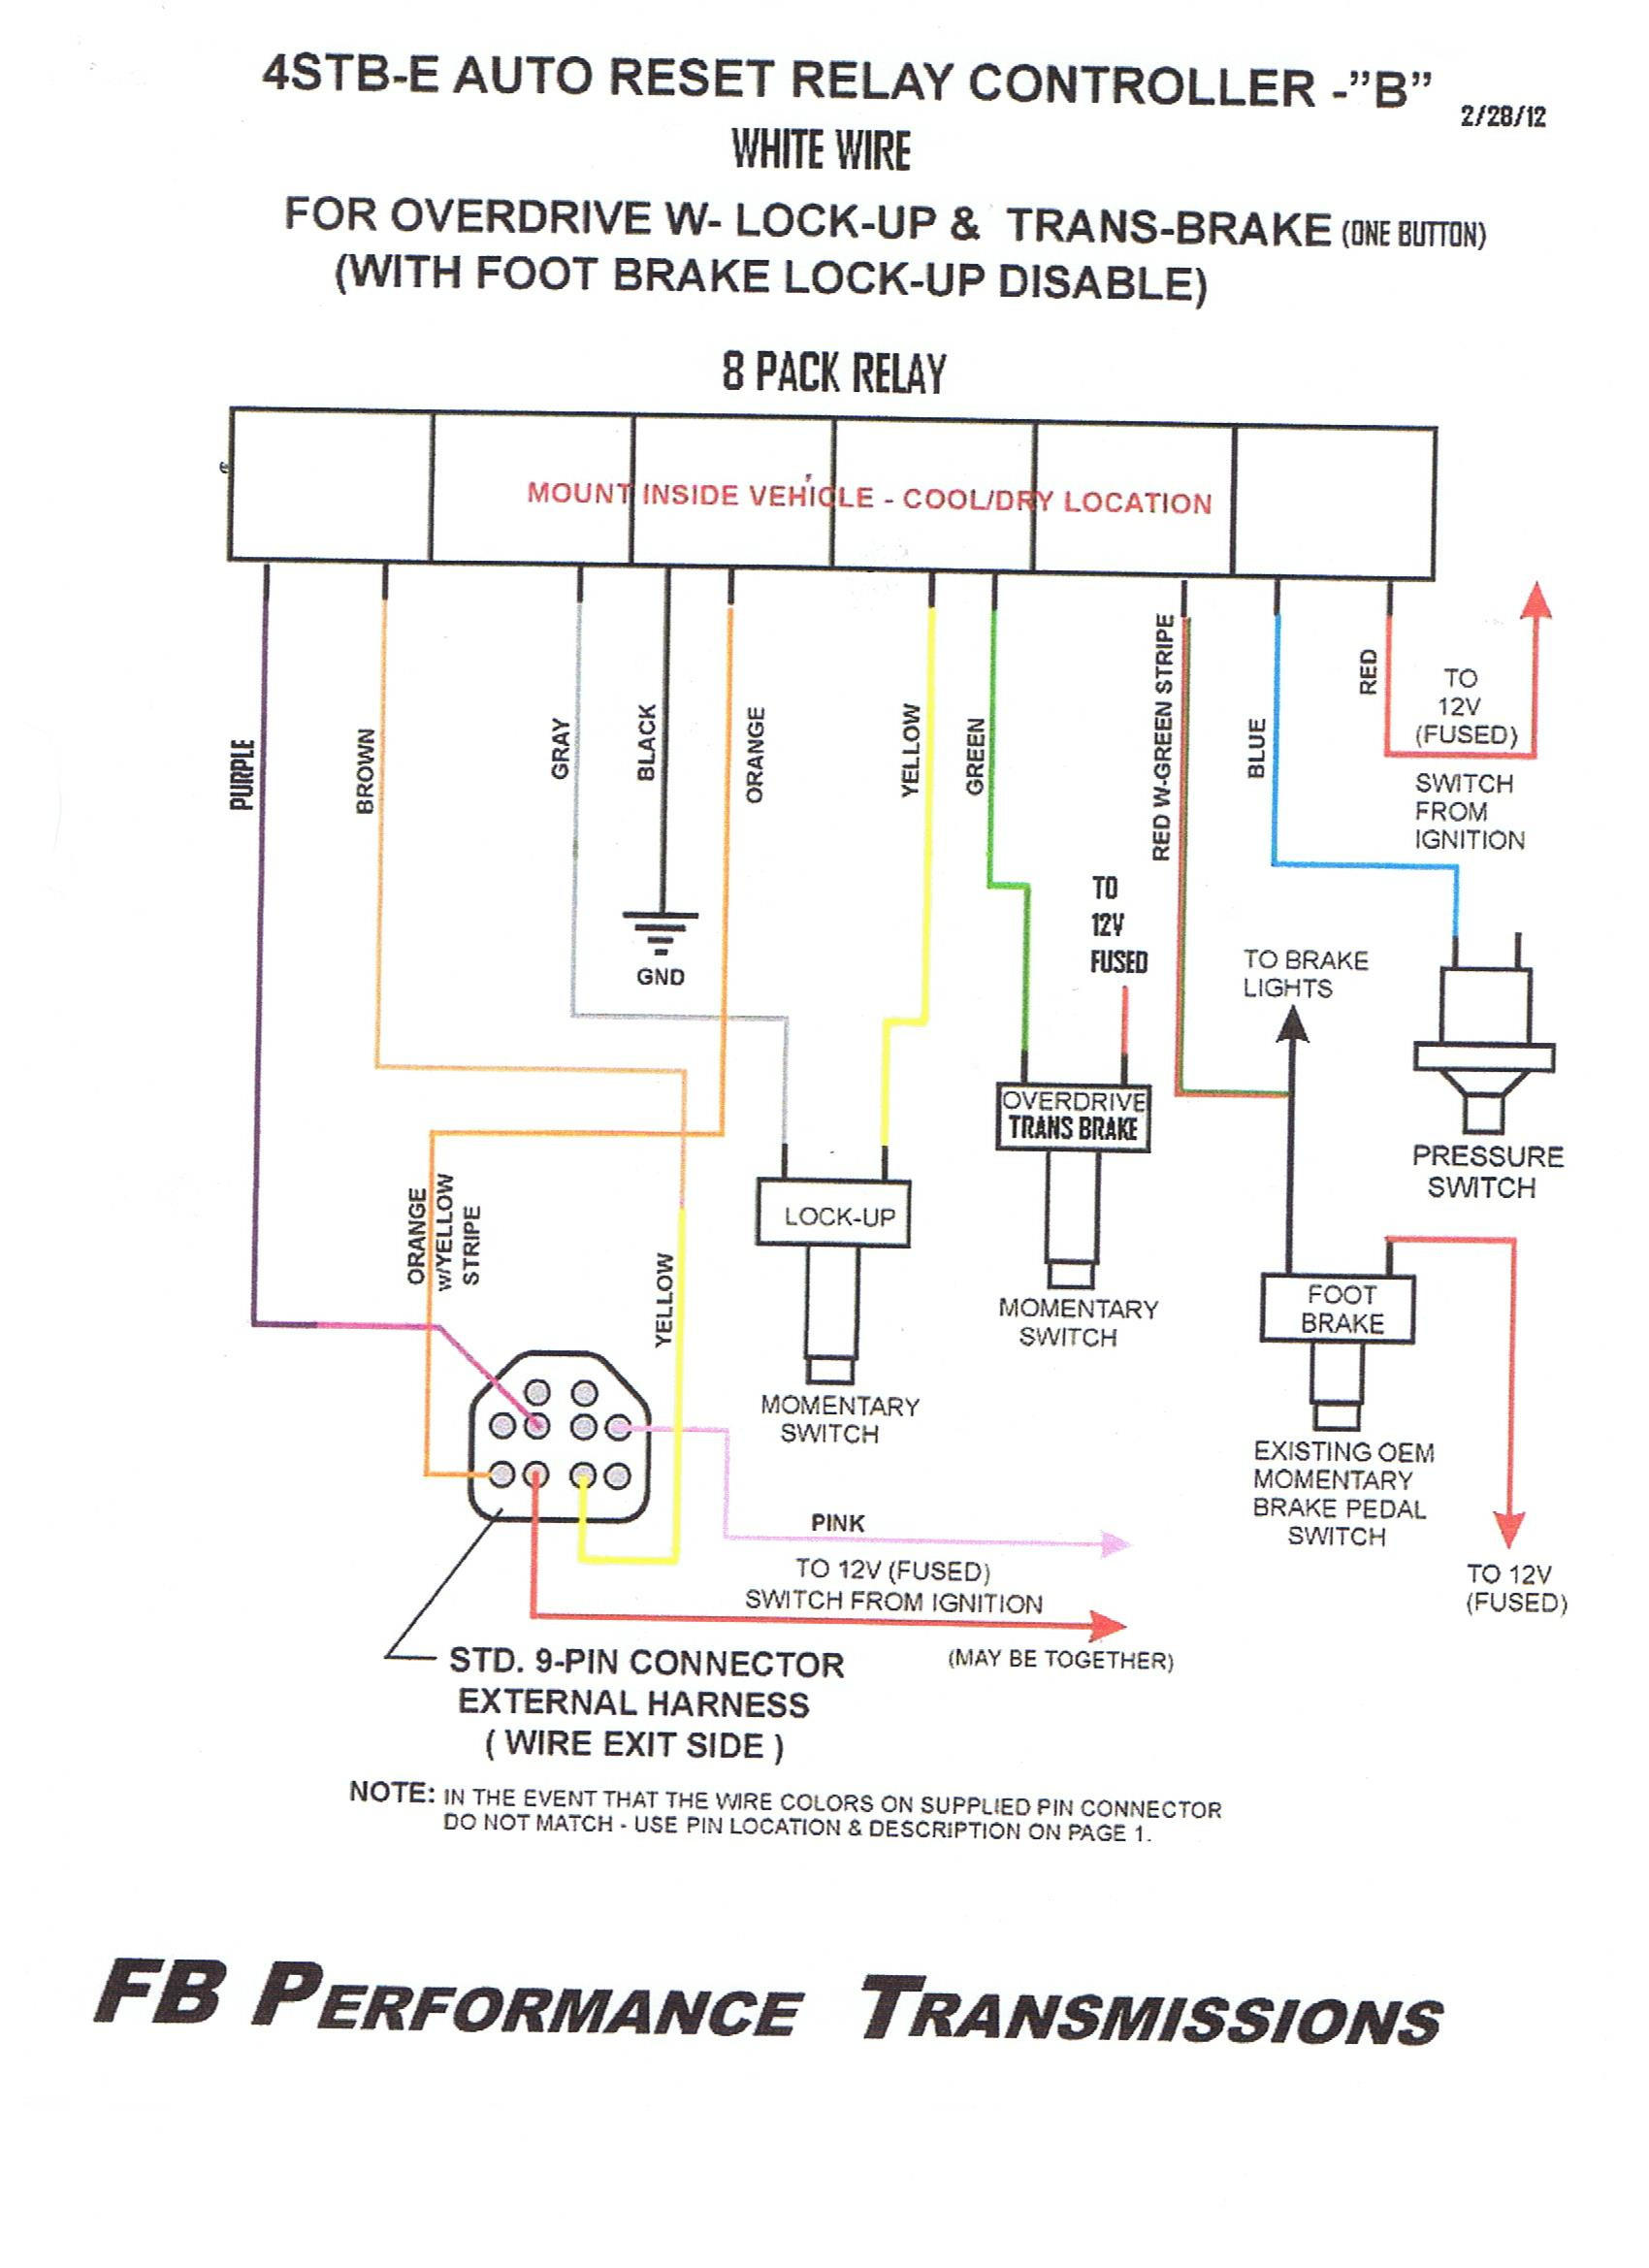 push button switch wiring diagram Download-Wiring Diagram for Push button Start New Push button Switch Wiring Diagram 8-h